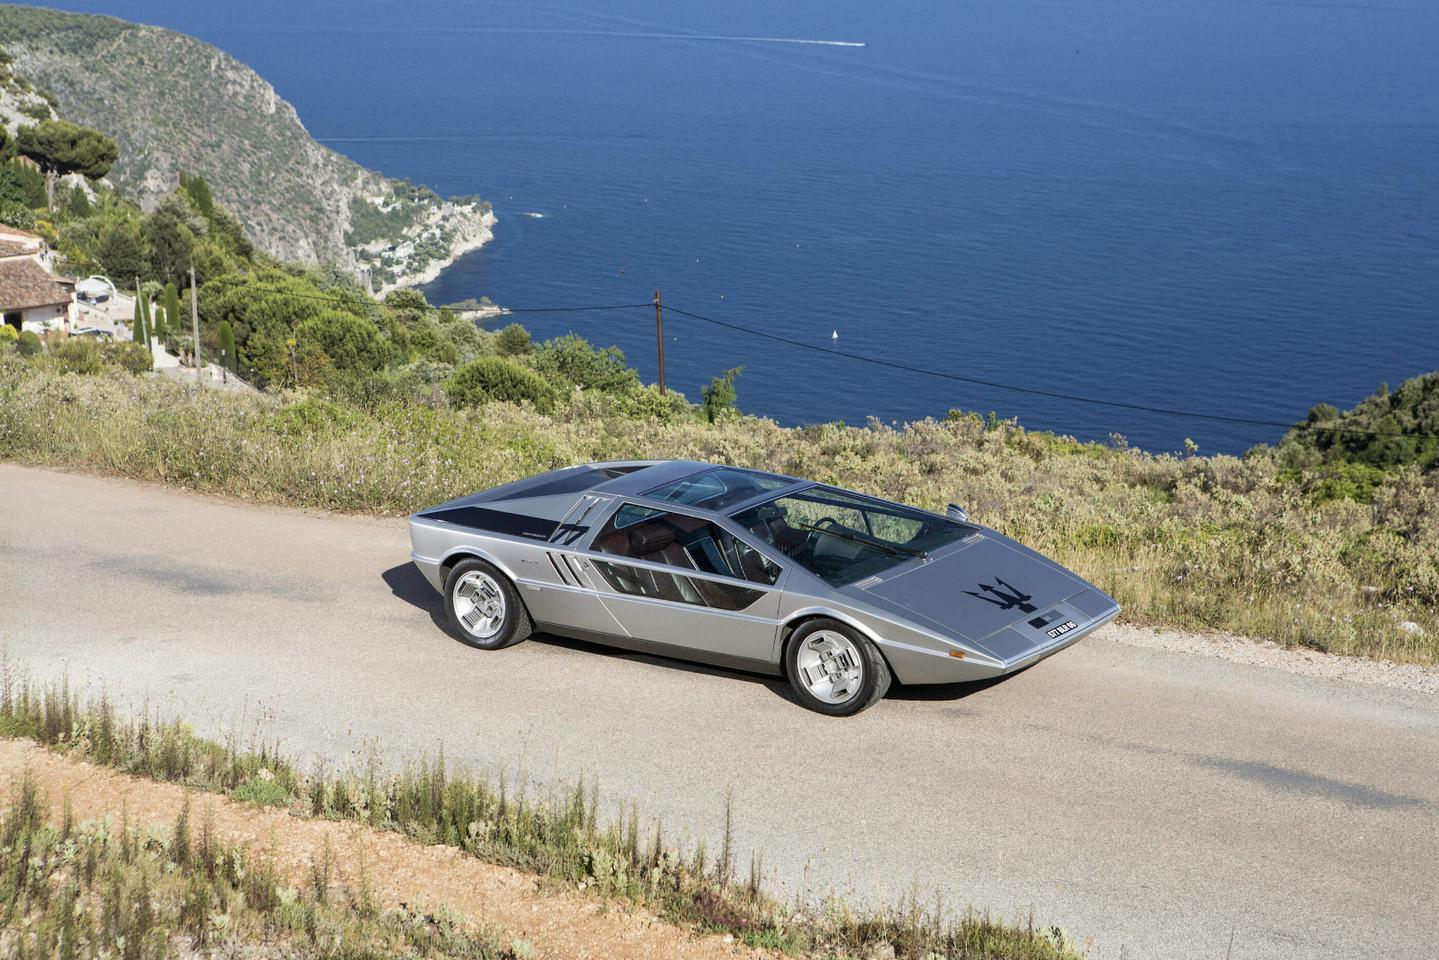 The outrageous, wedge-shaped styling of the Maserati Boomerang influenced many early 70s supercars